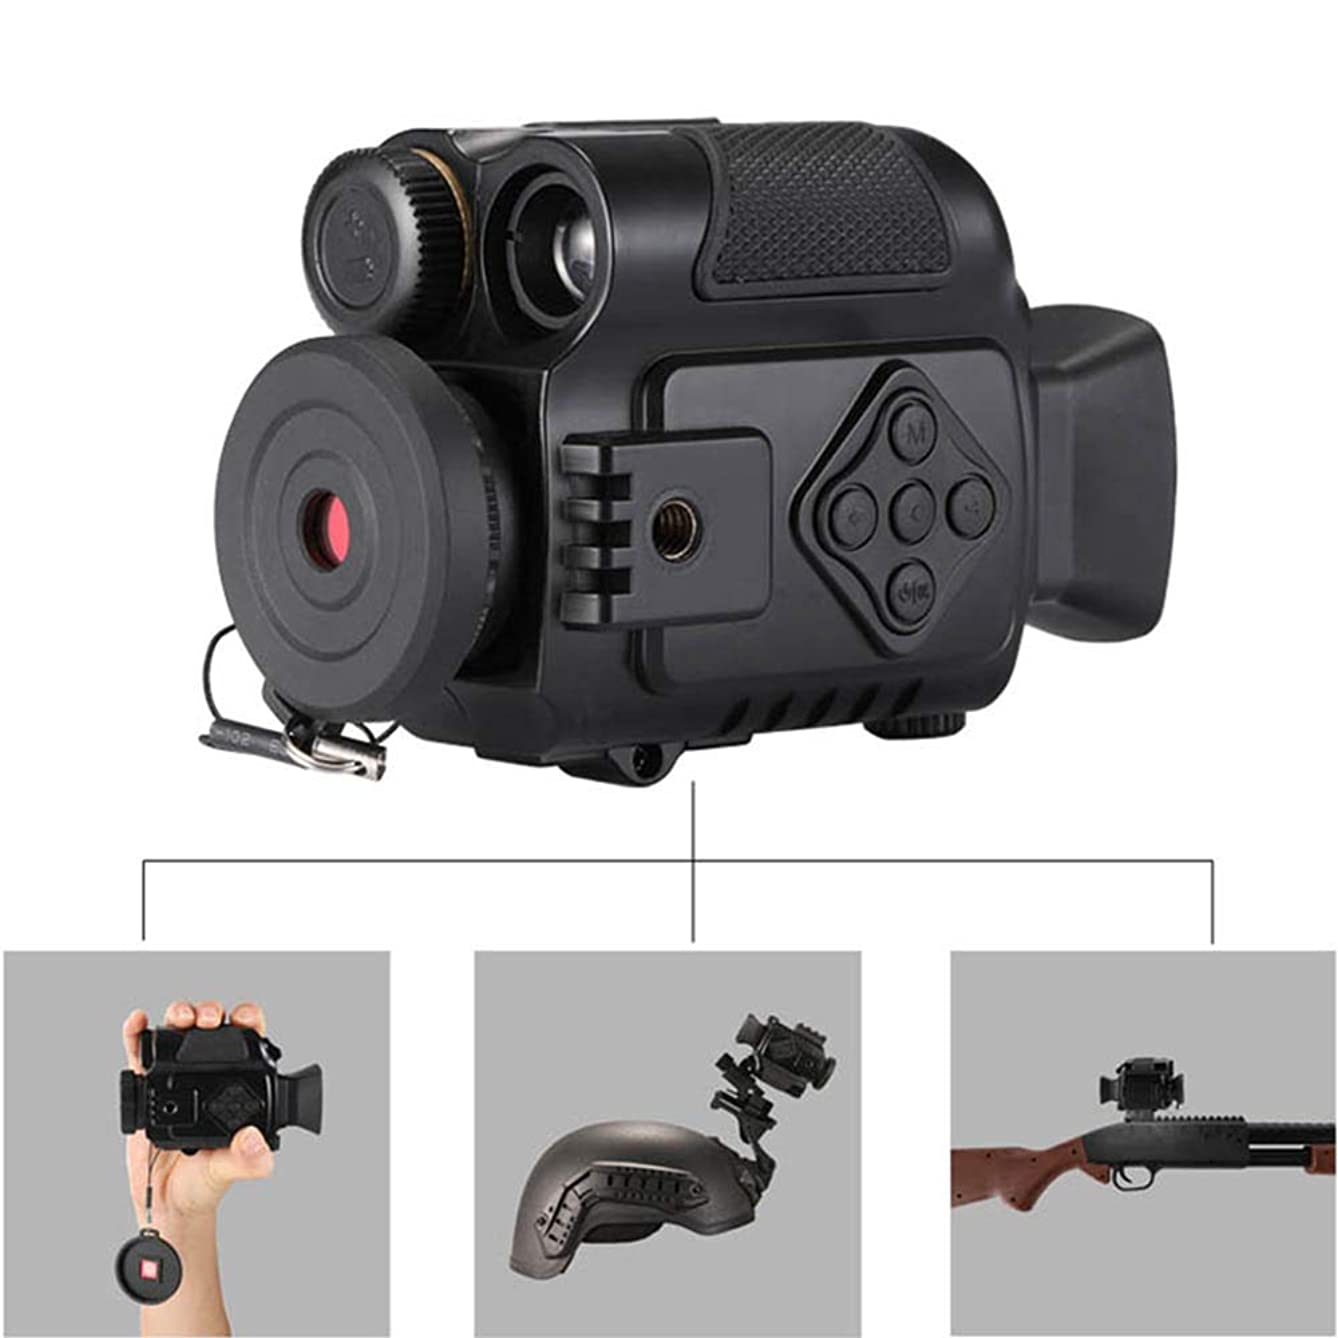 TIAOTIAO Digital Night Vision Sport Action Cameras, 5X Zoom Mini Size NV Infrared Cameras Monocular, for Outdoor Hunting, Bird Watching, Hiking